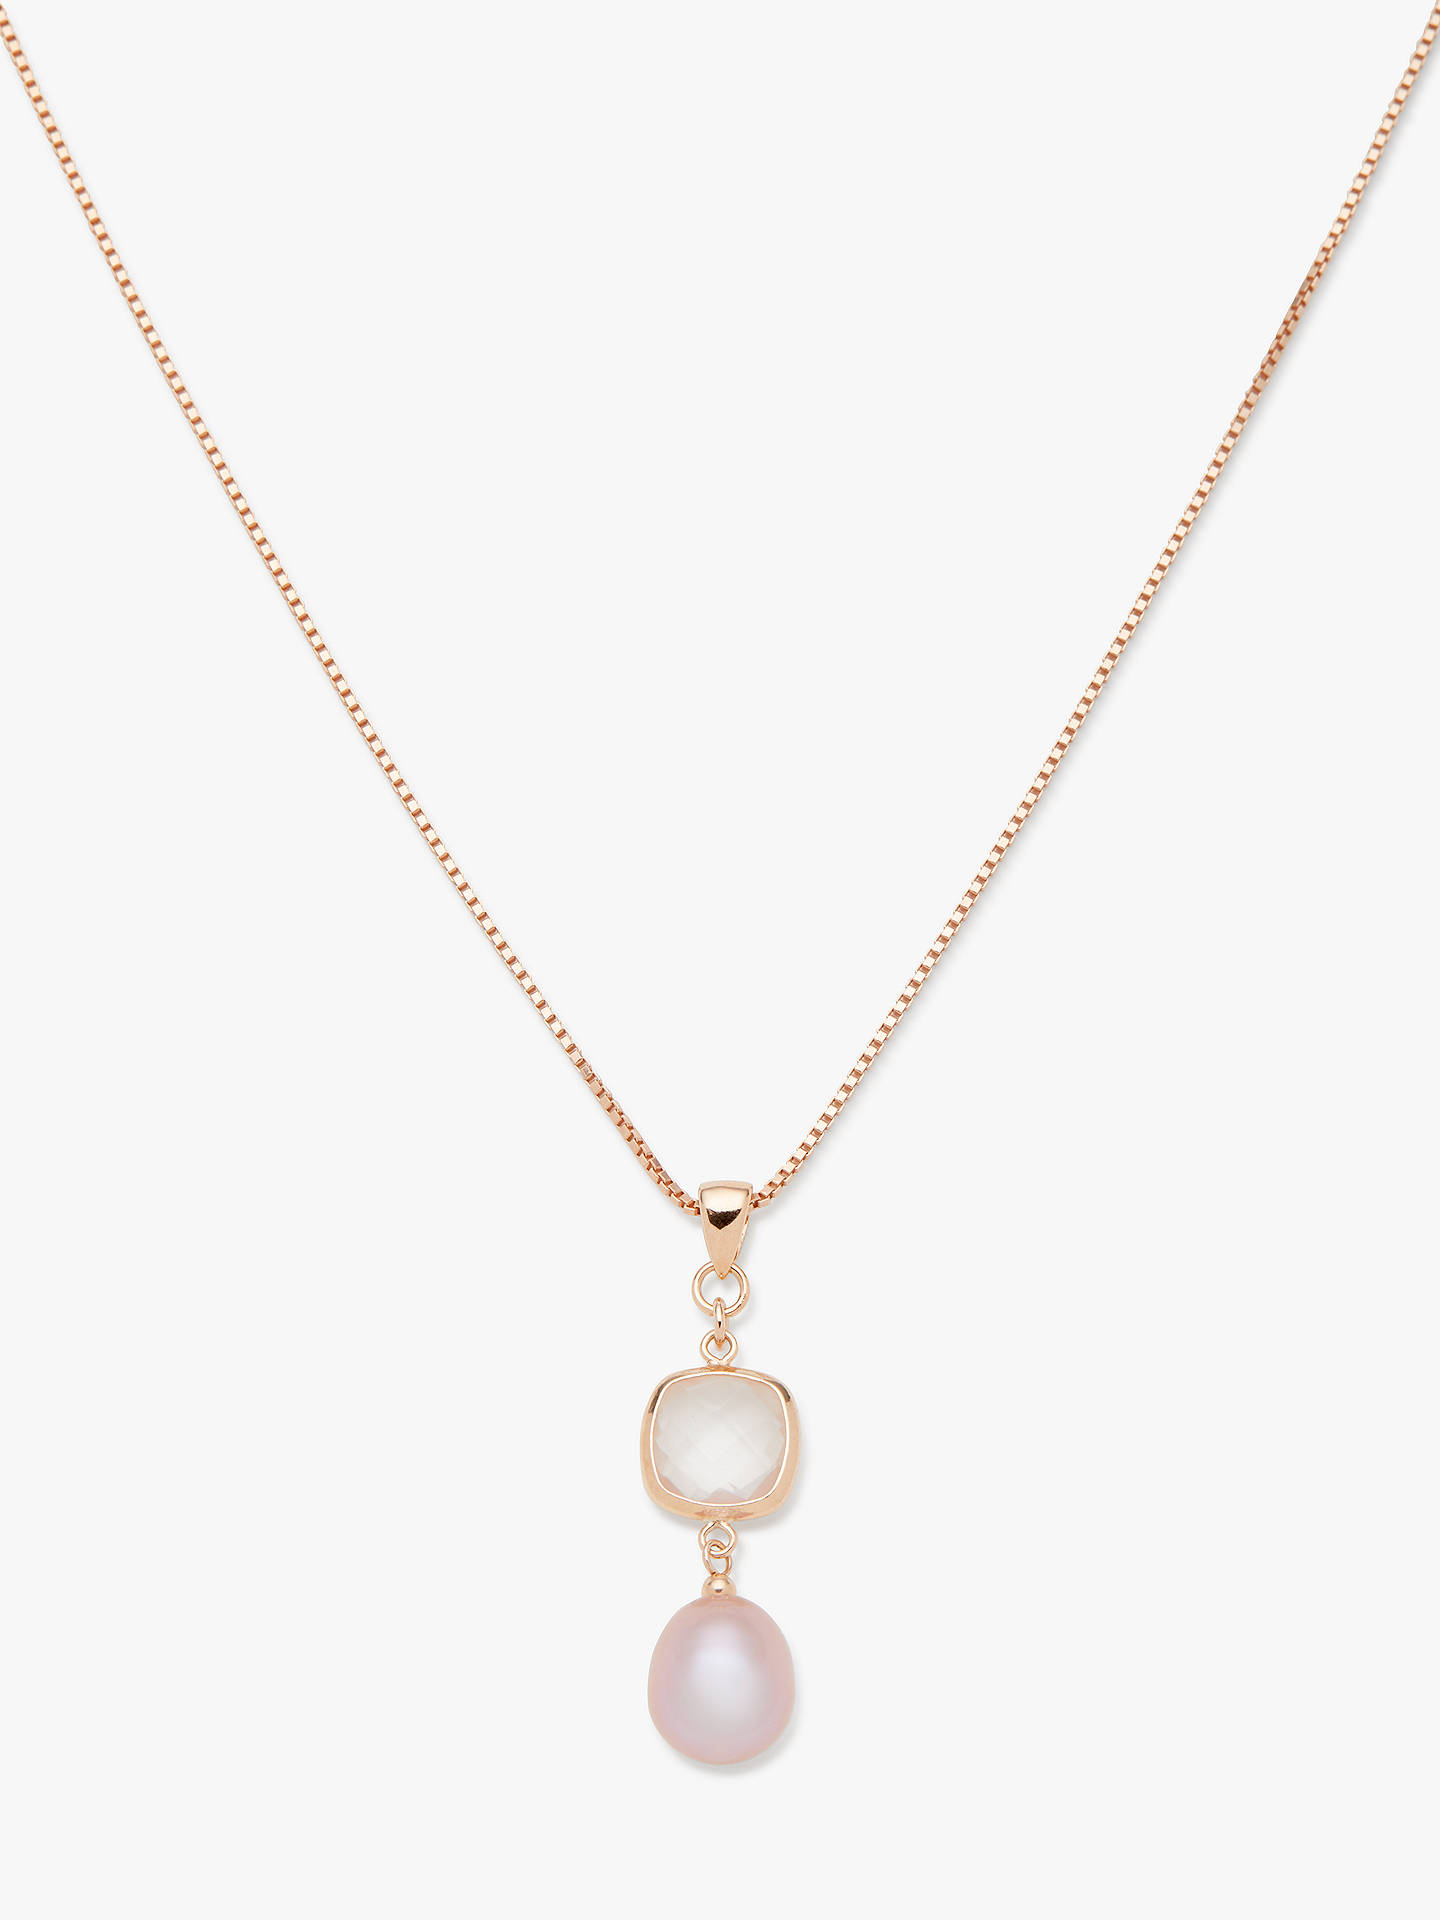 BuyLido Pearls Rose Quartz and Freshwater Pearl Pendant Necklace, Rose Gold Online at johnlewis.com